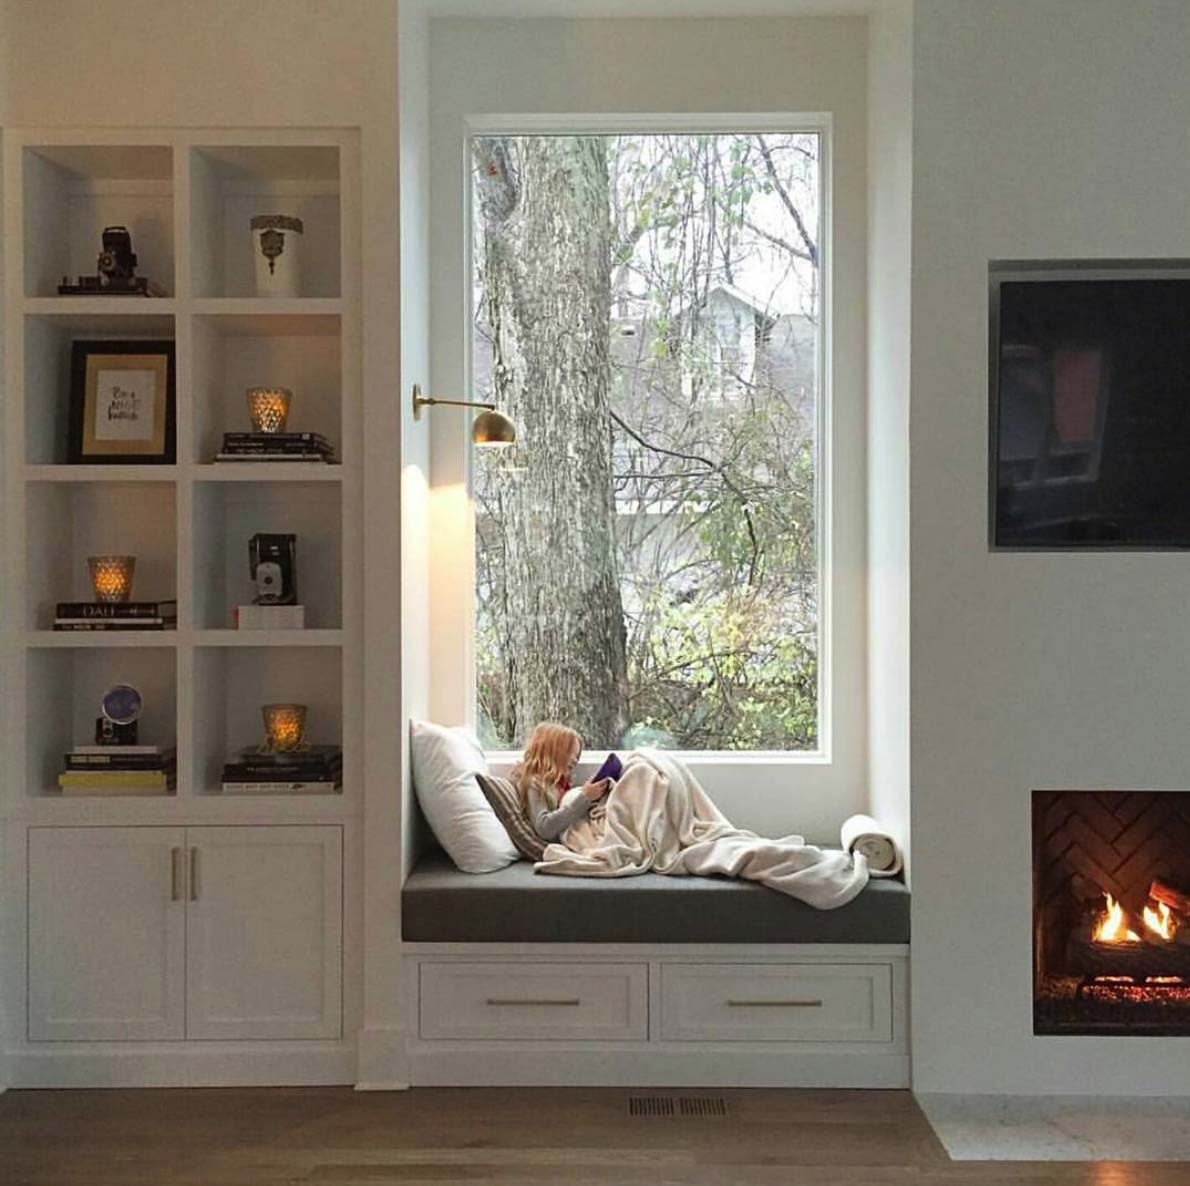 reading nook ideas, fireplace, inspiration and inspiring interiors